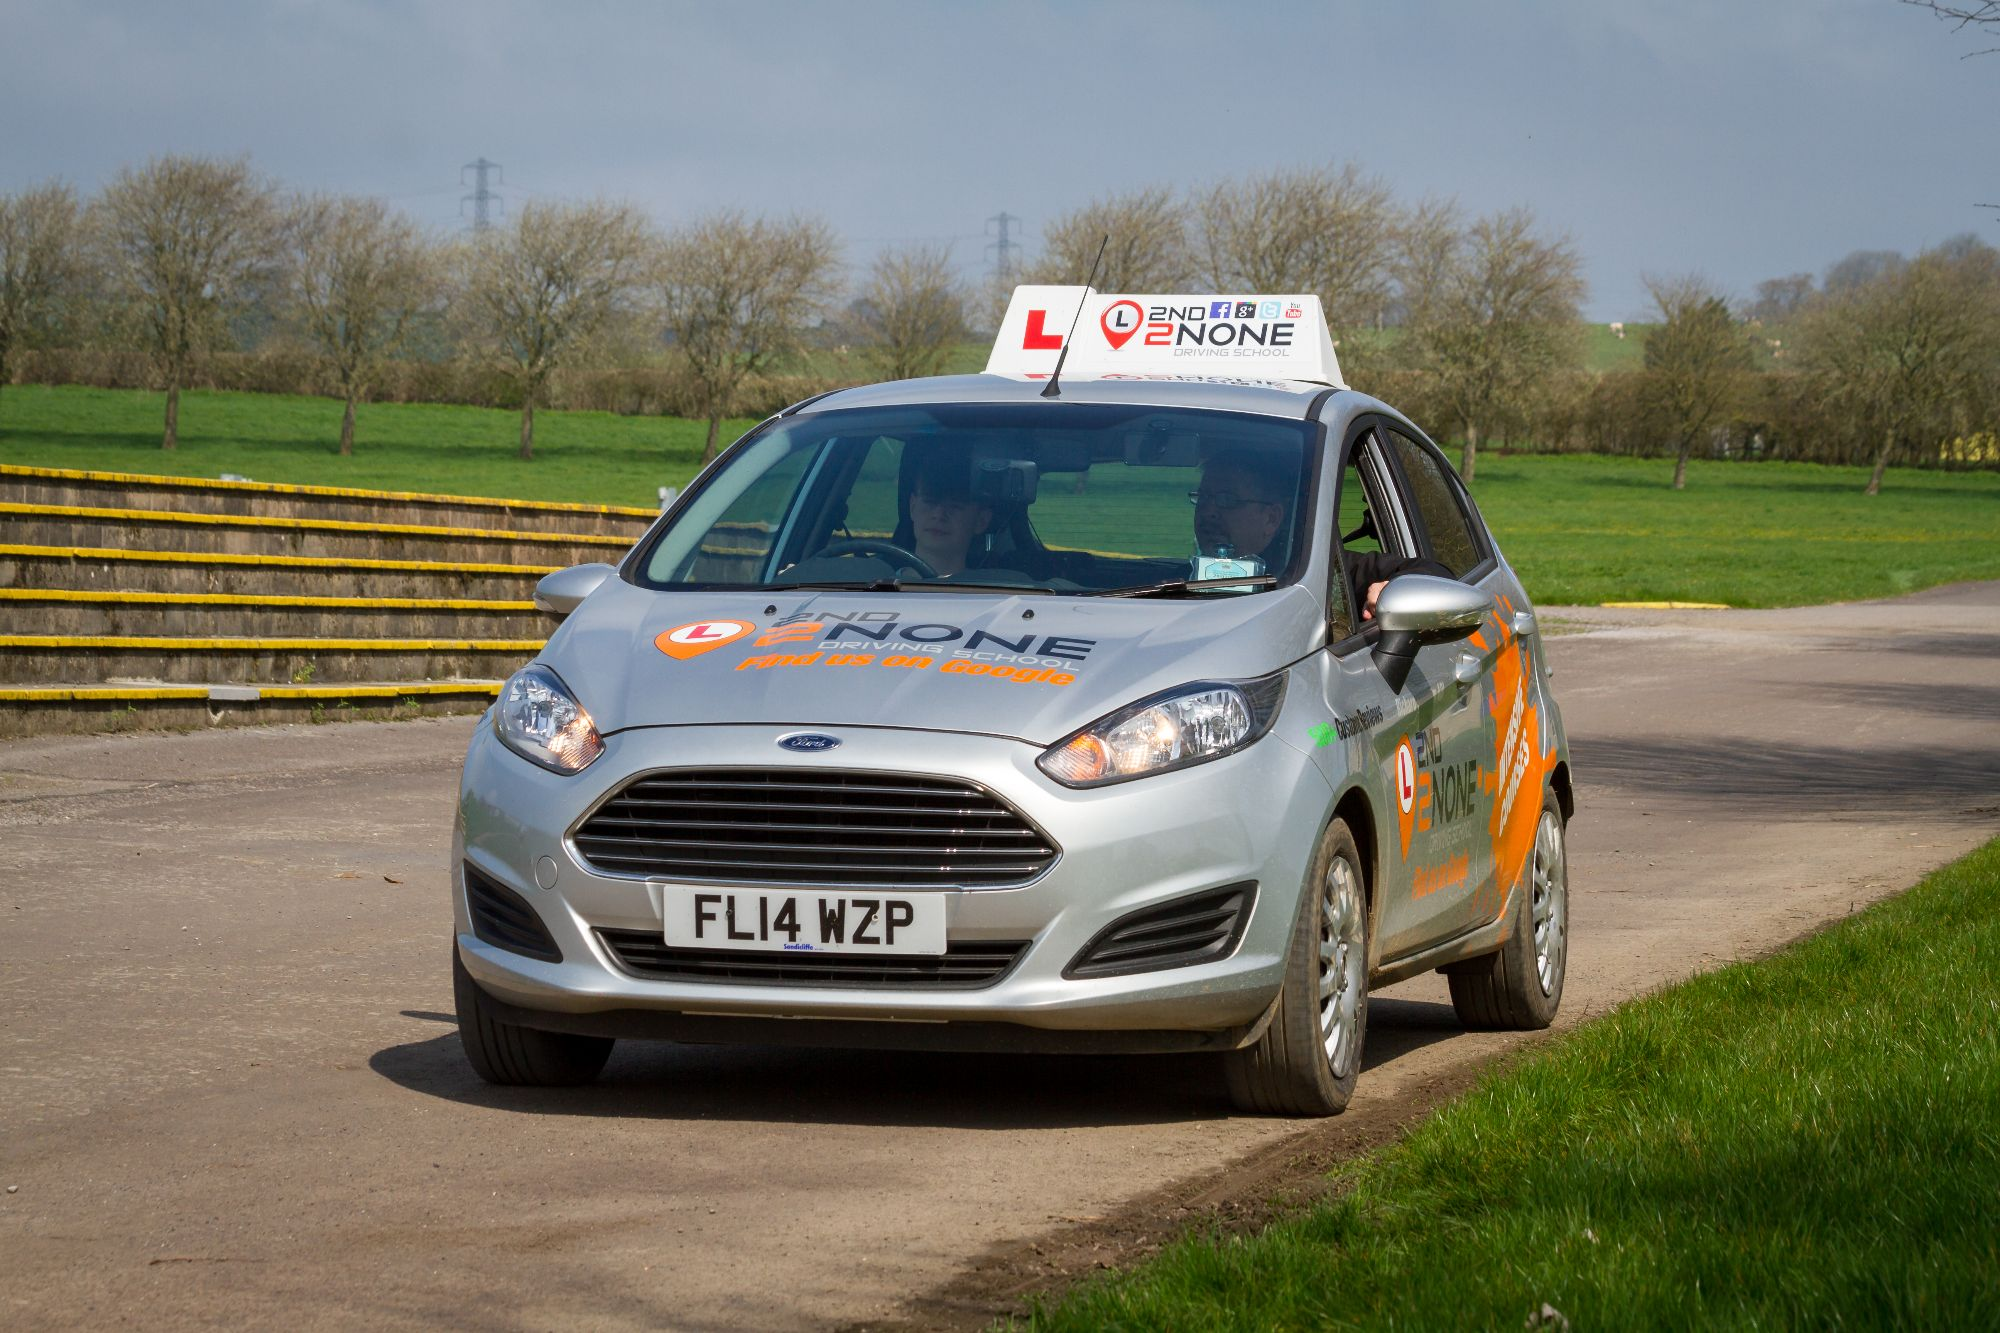 Under 17's driving lessons Yeovil